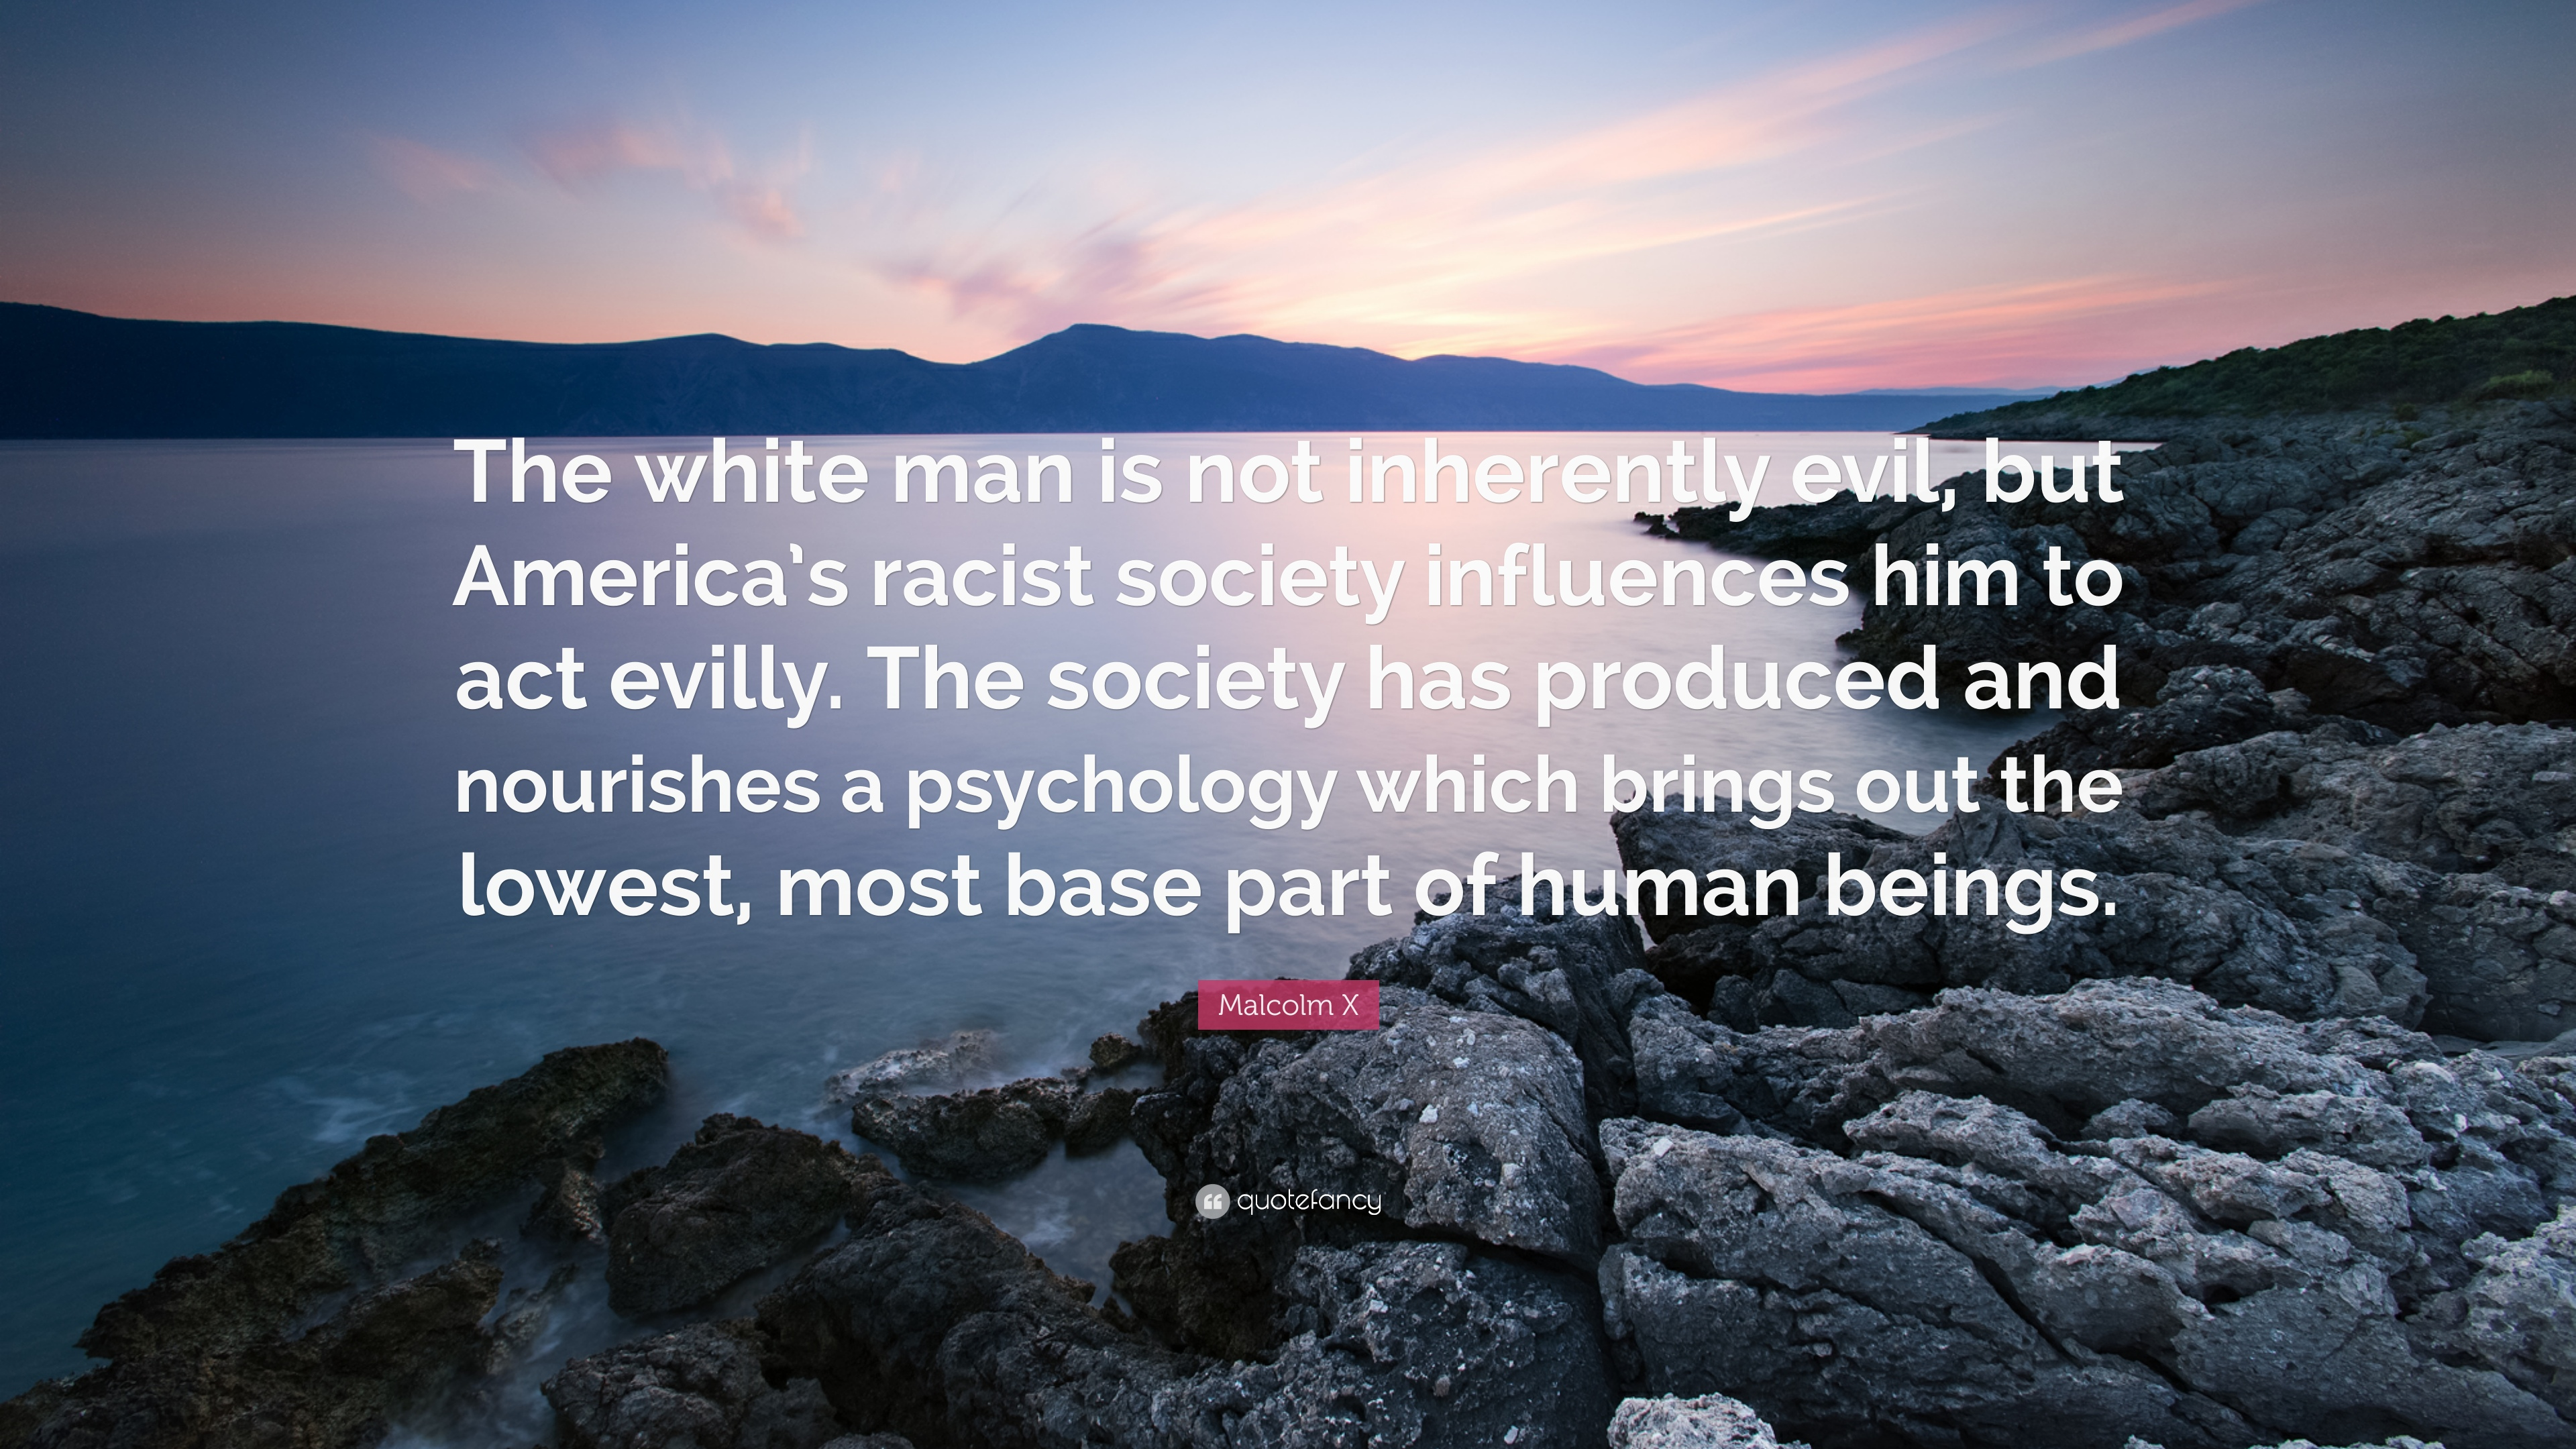 the inborn evil of mankind essay View essay - lord of the flies literature and rhetoric from engl 274 at university of illinois, urbana champaign evil is an inborn trait of mankind for years.